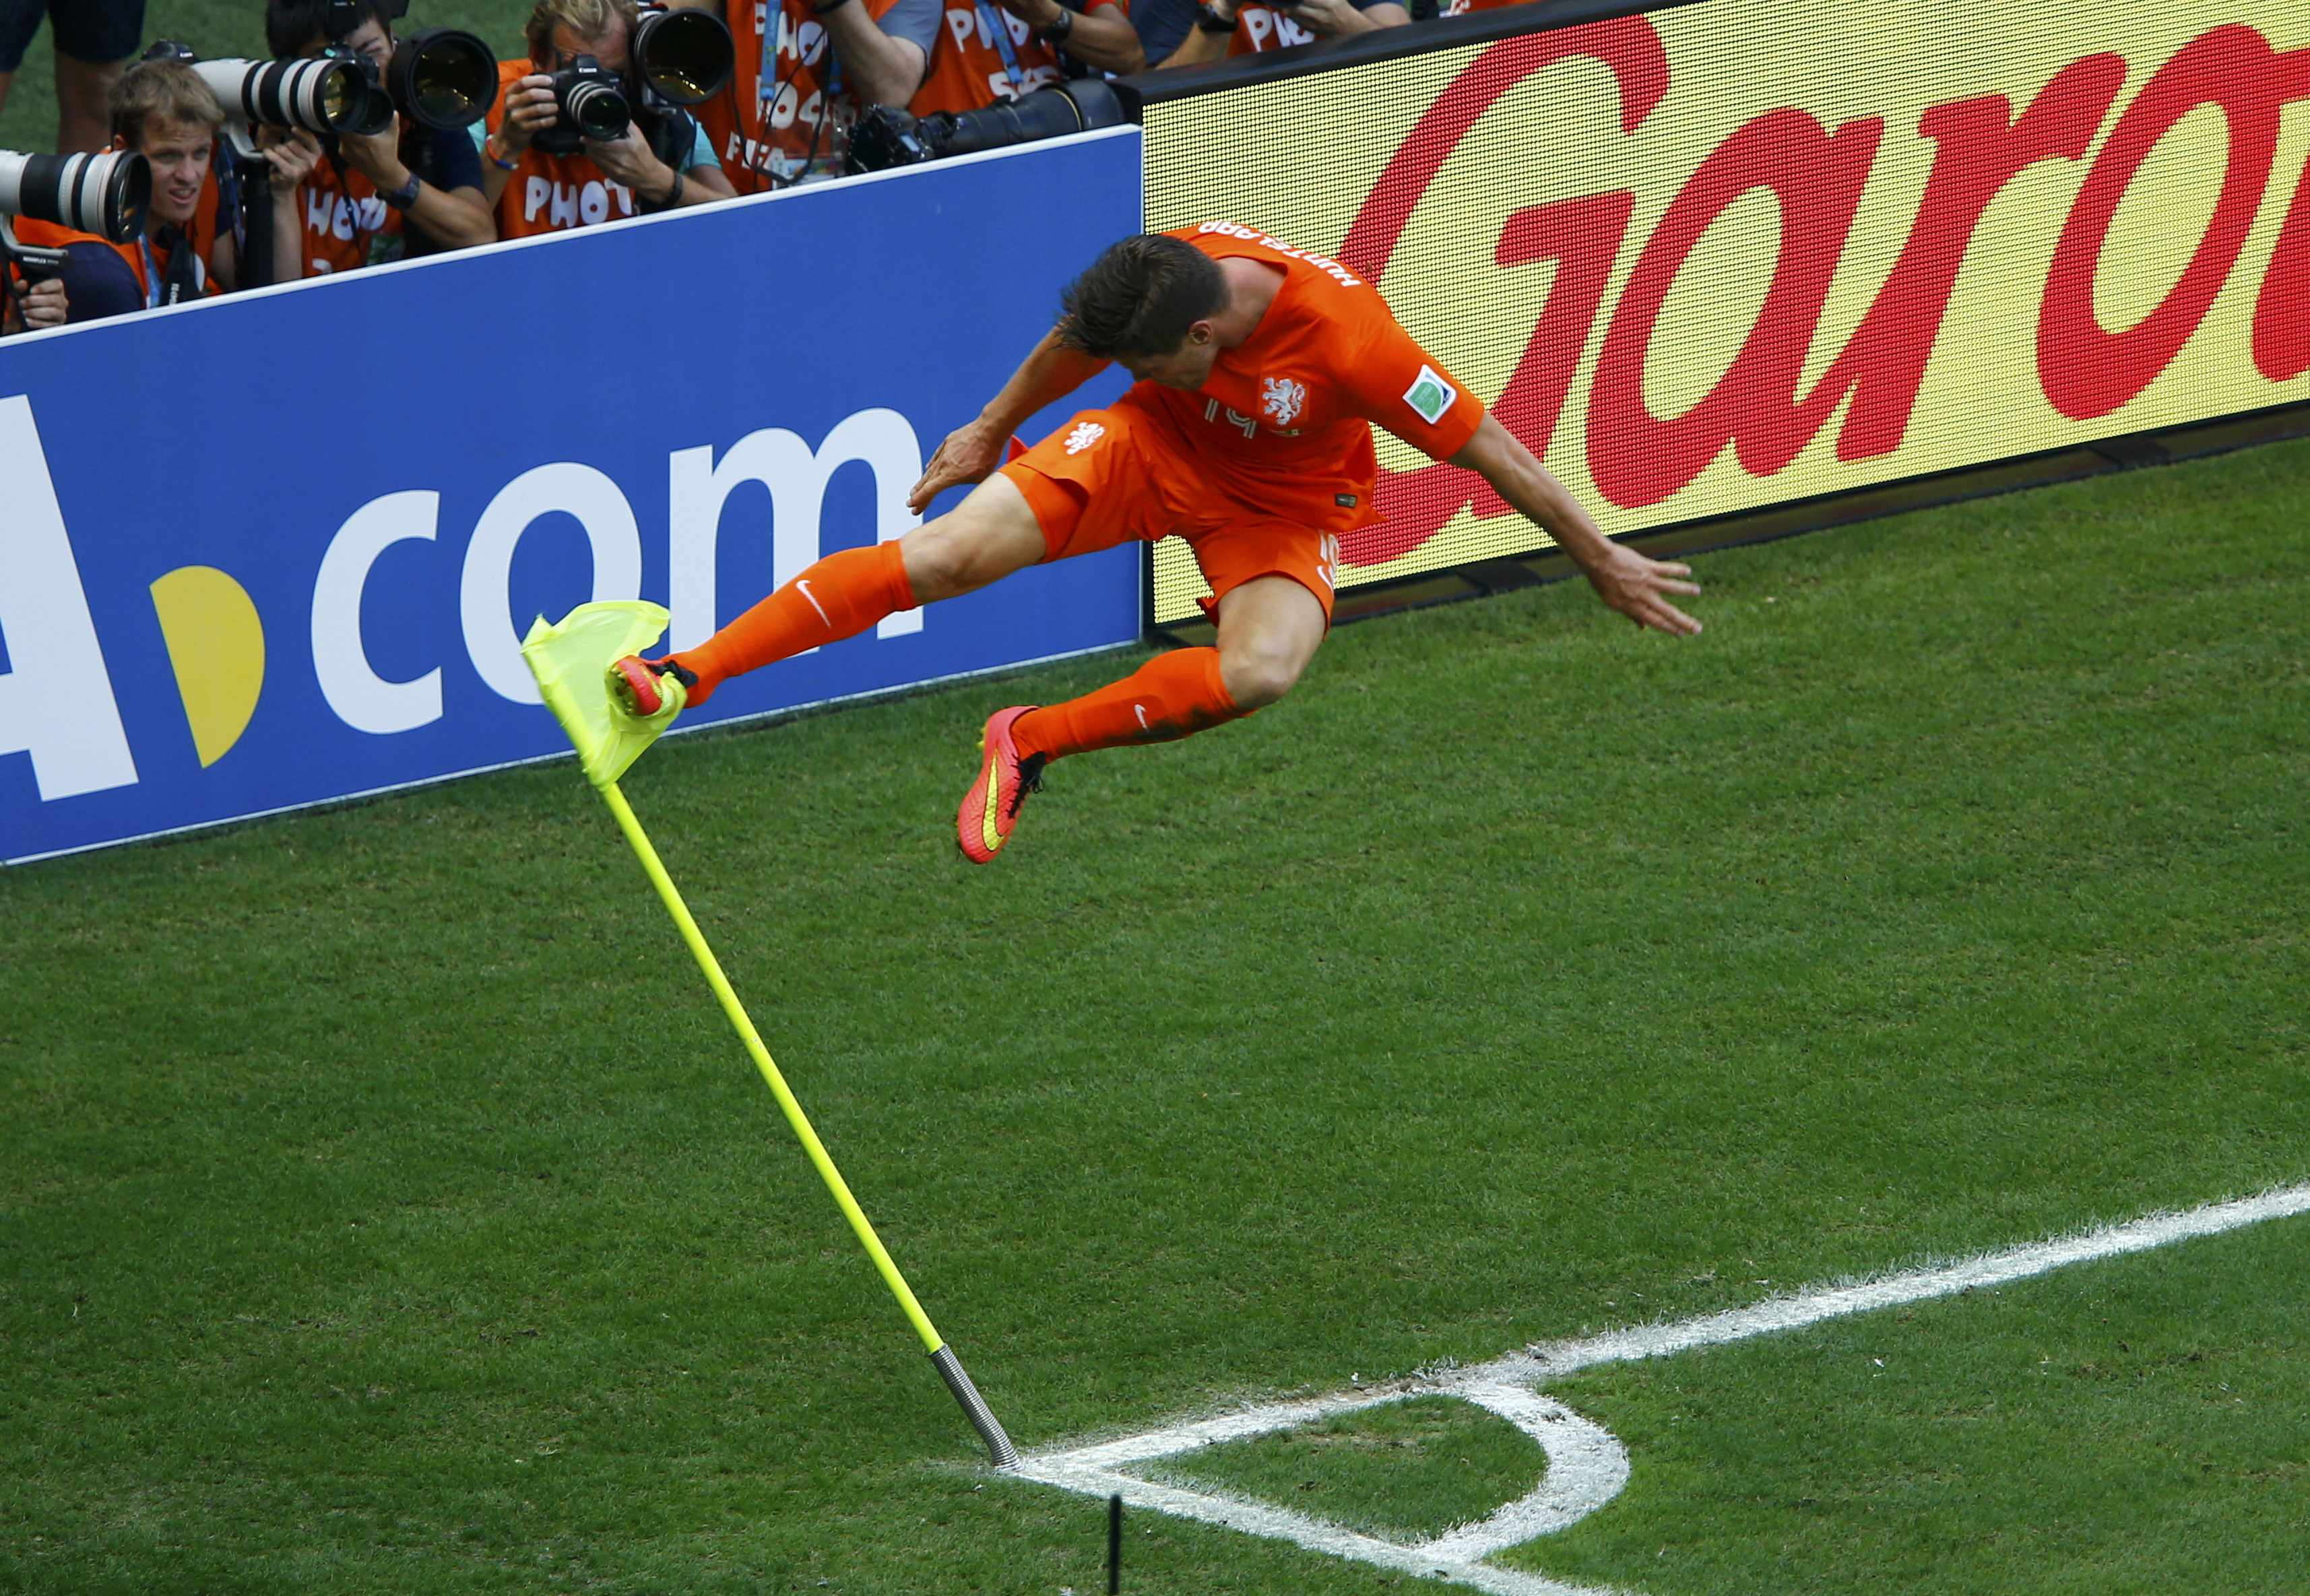 Klaas-Jan Huntelaar of the Netherlands celebrates after scoring a goal during the 2014 World Cup round of 16 game between Mexico and the Netherlands at the Castelao arena